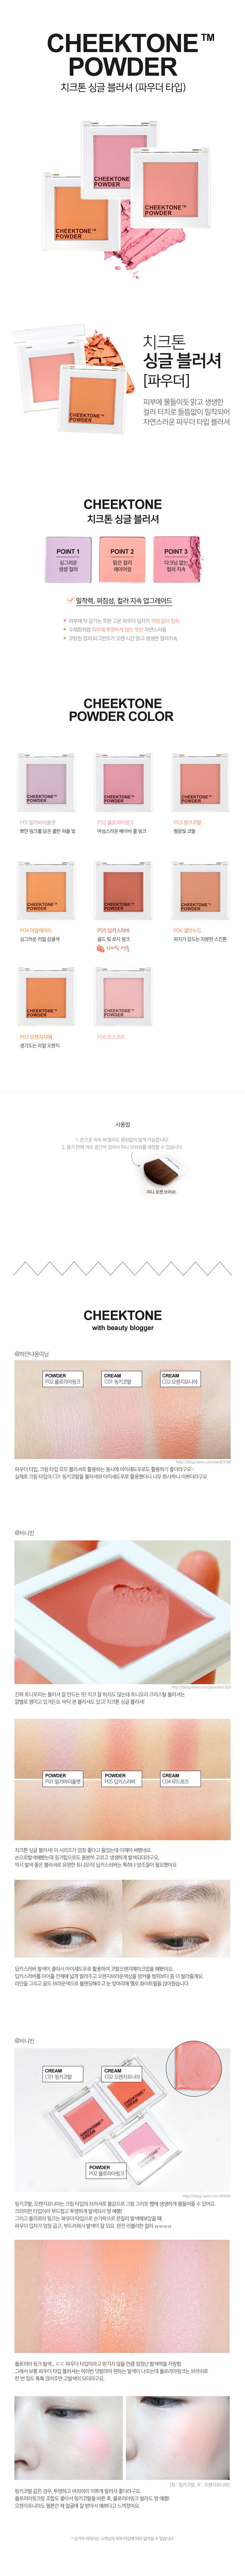 Tony Moly Cheektone Single Blusher Powder korean cosmetic makeup product online shop malaysia spain portugal1